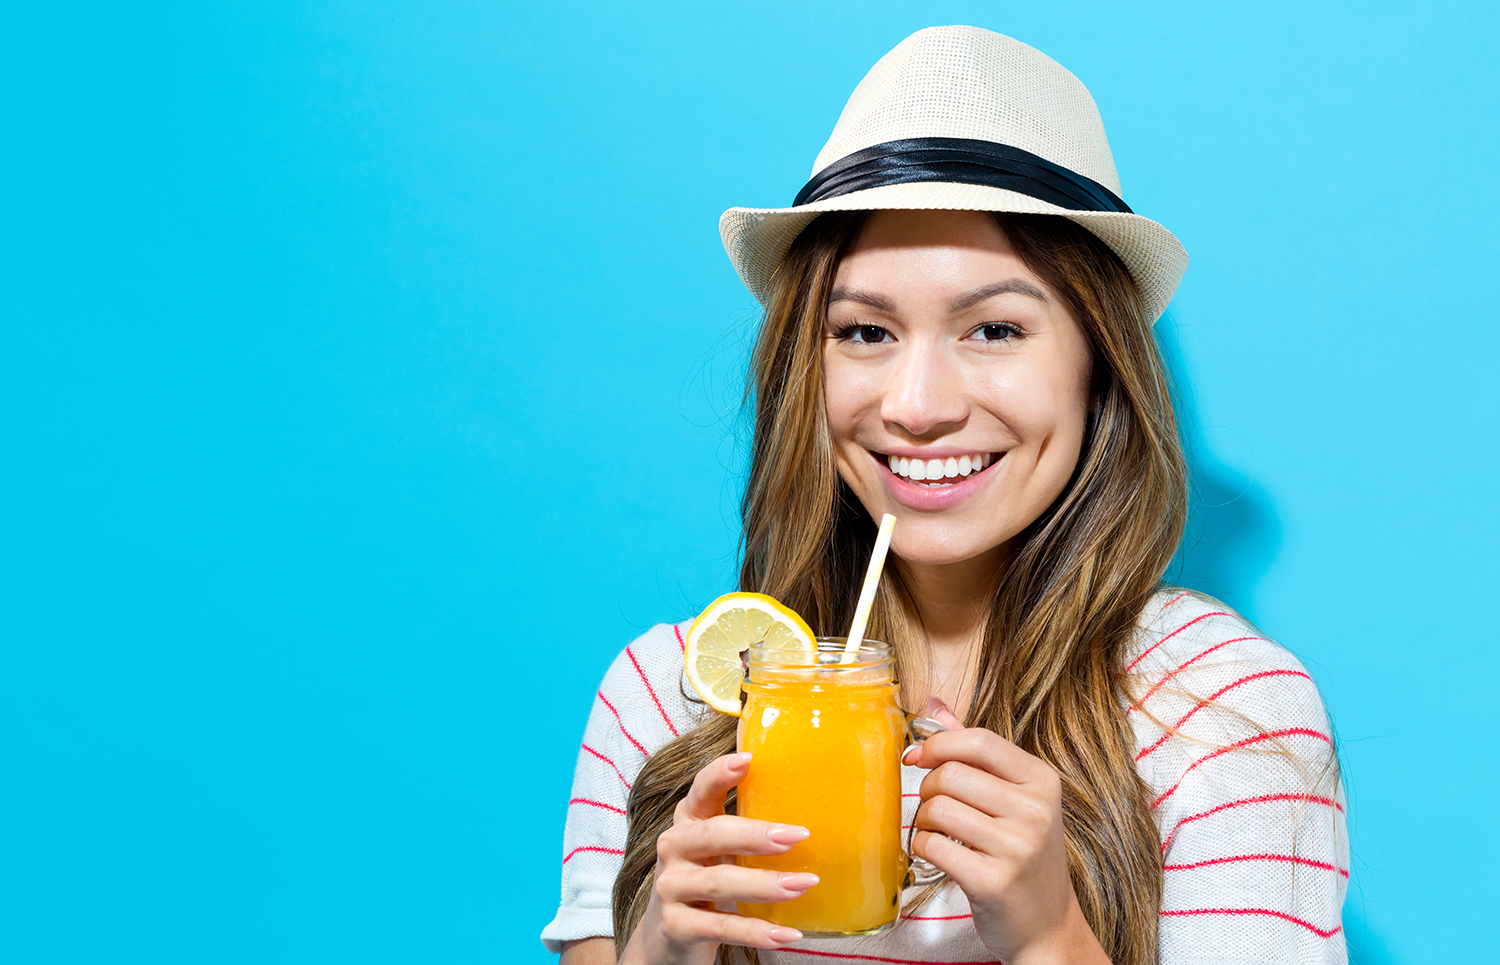 Here's how restaurants can manage their summer frozen drink prices for menu profit.